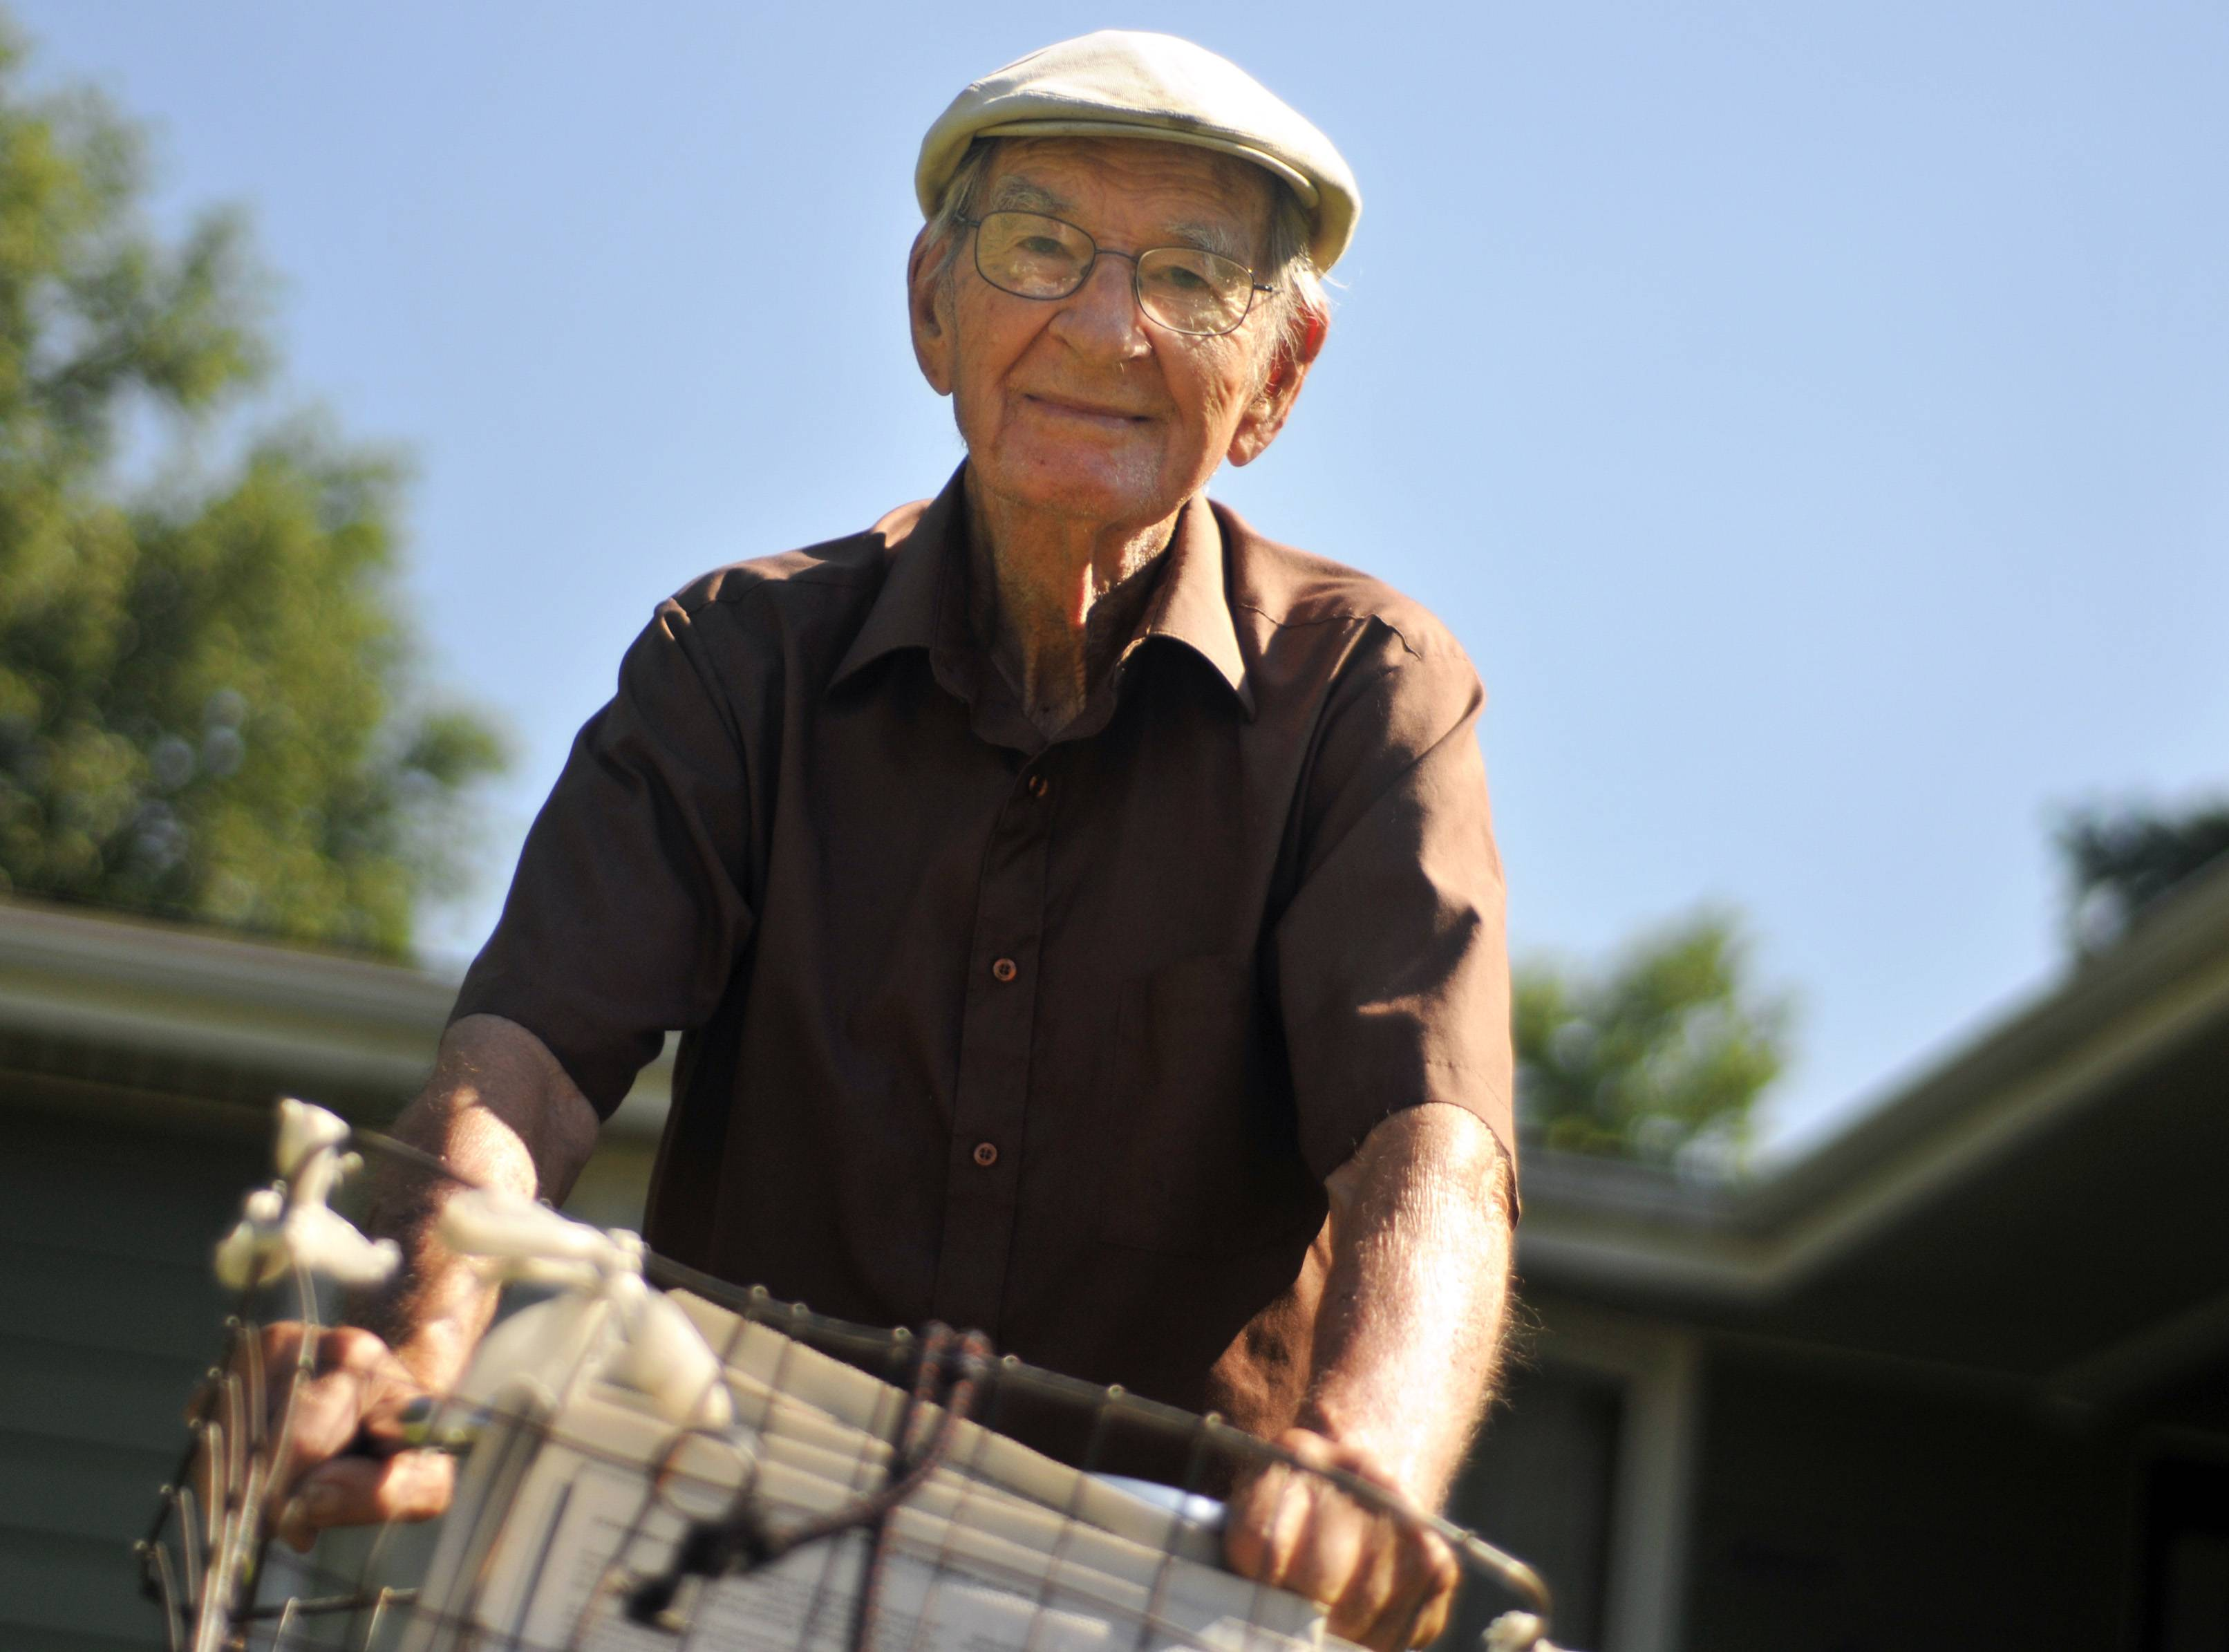 Marvin Teel rode his antique Schwinn bicycle five days a week to deliver newspapers in downstate Christopher.